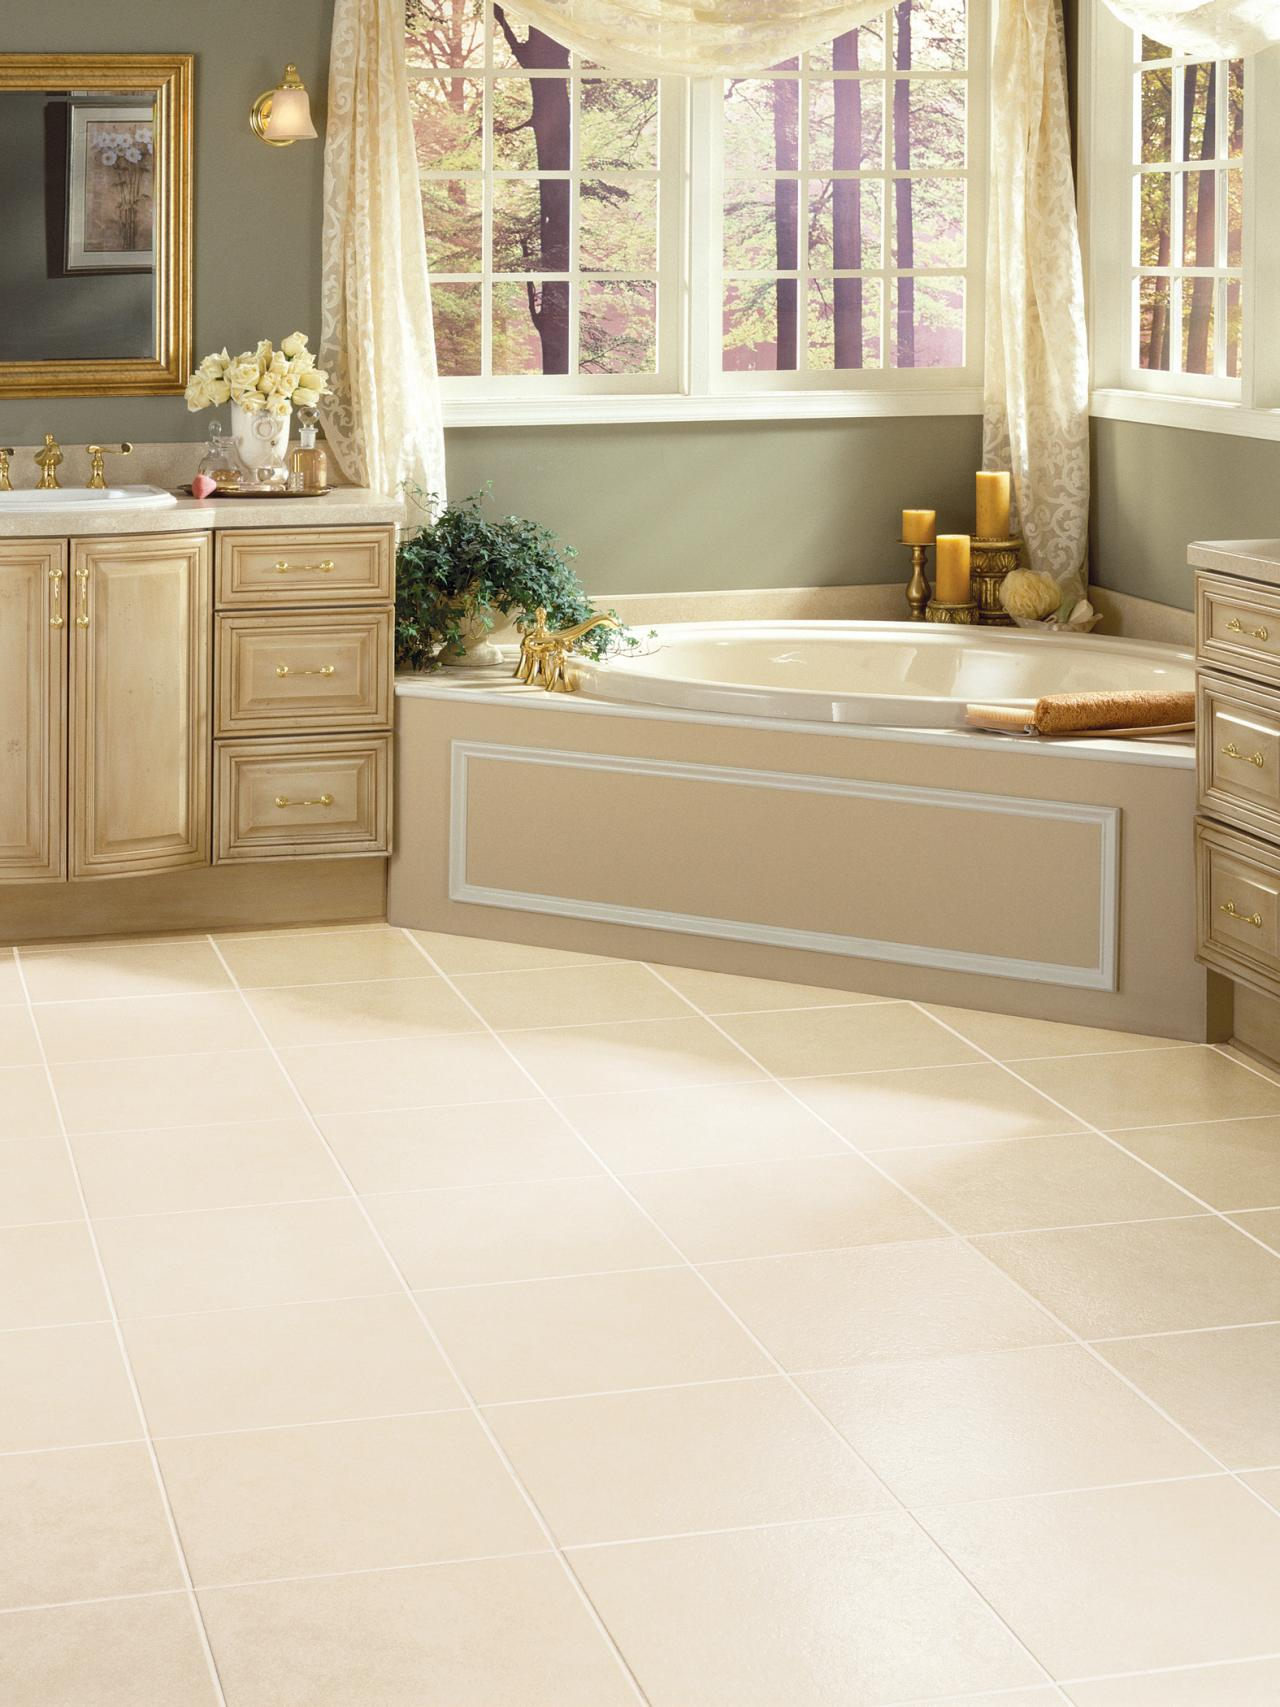 30 stunning pictures and ideas of vinyl flooring bathroom for Vinyl floor tiles in bathroom